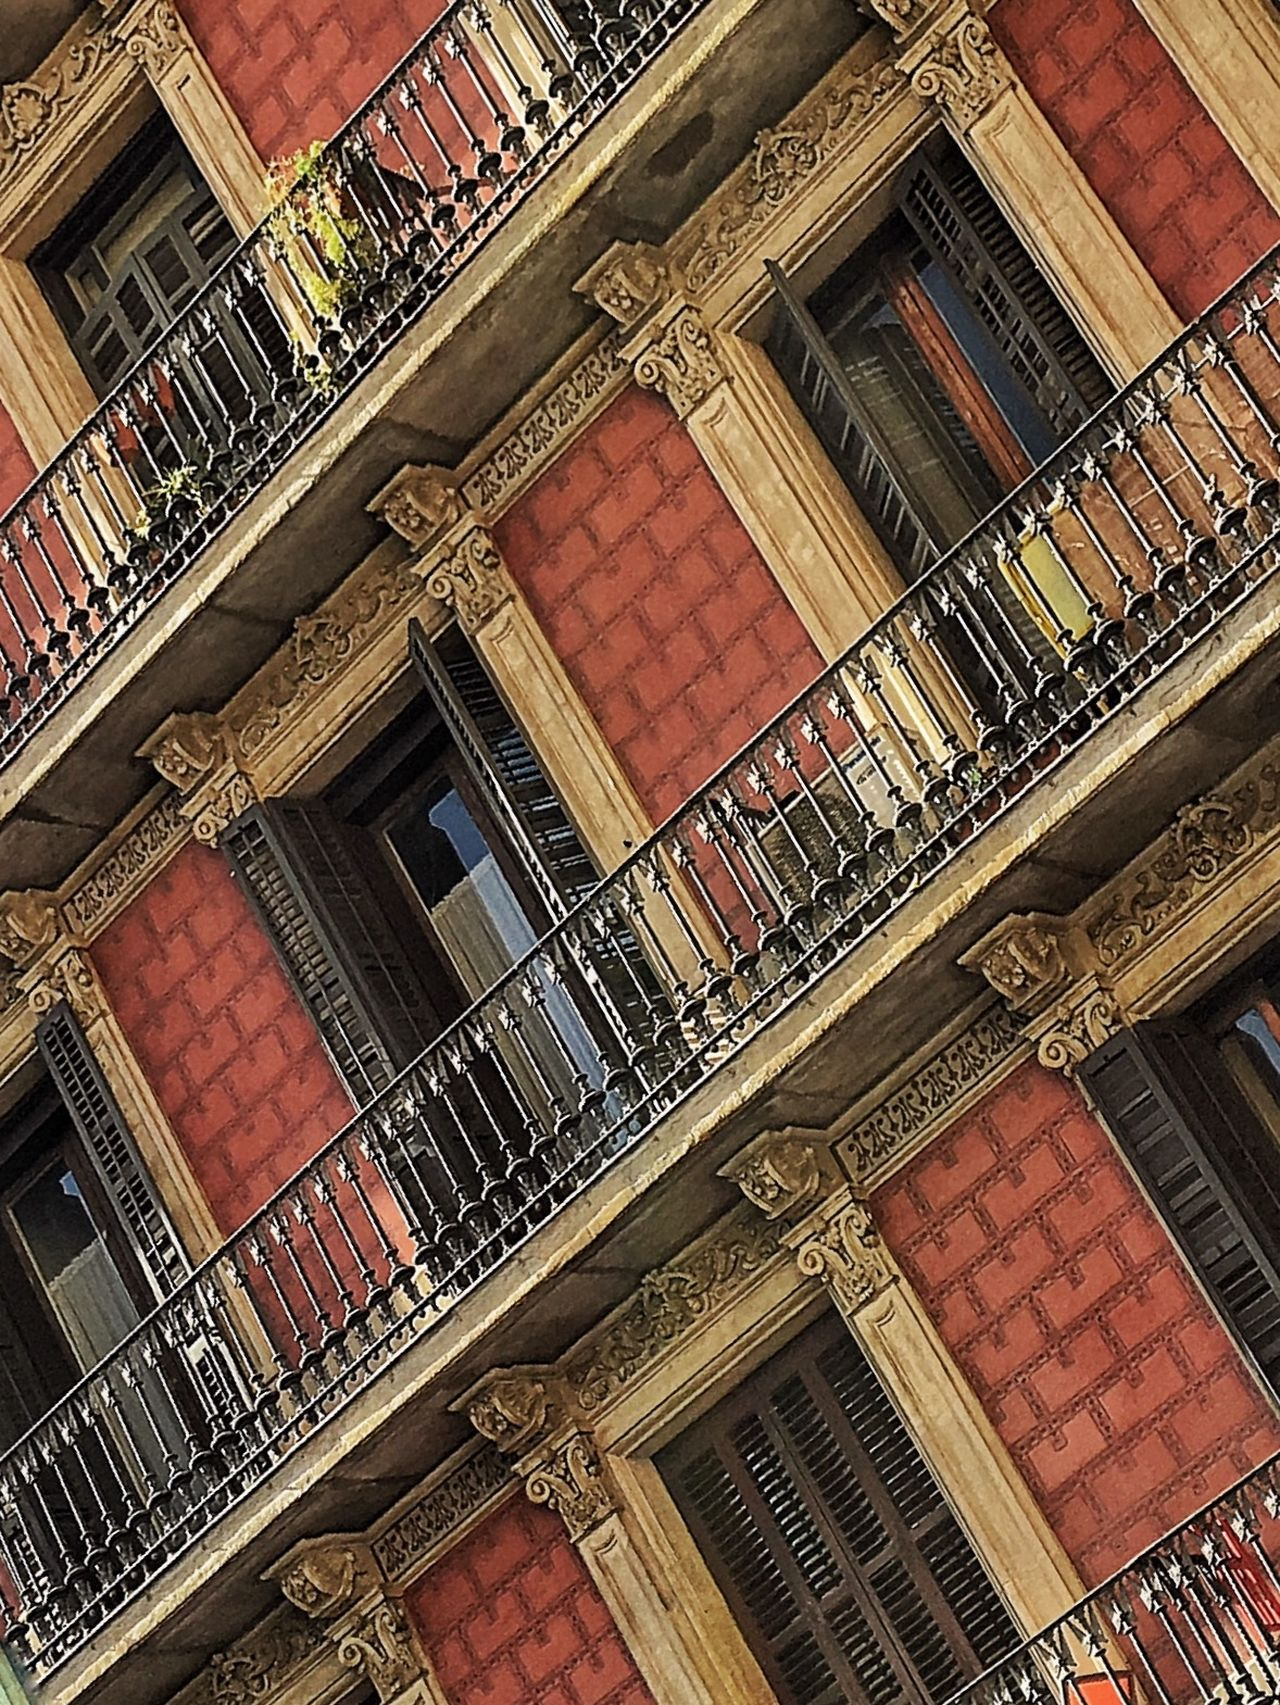 Learn & Shoot: Leading Lines One Your Side Taking Photos Walking Around Streetphotography EyeEm Spain Cityscapes Building Balcony Spainish